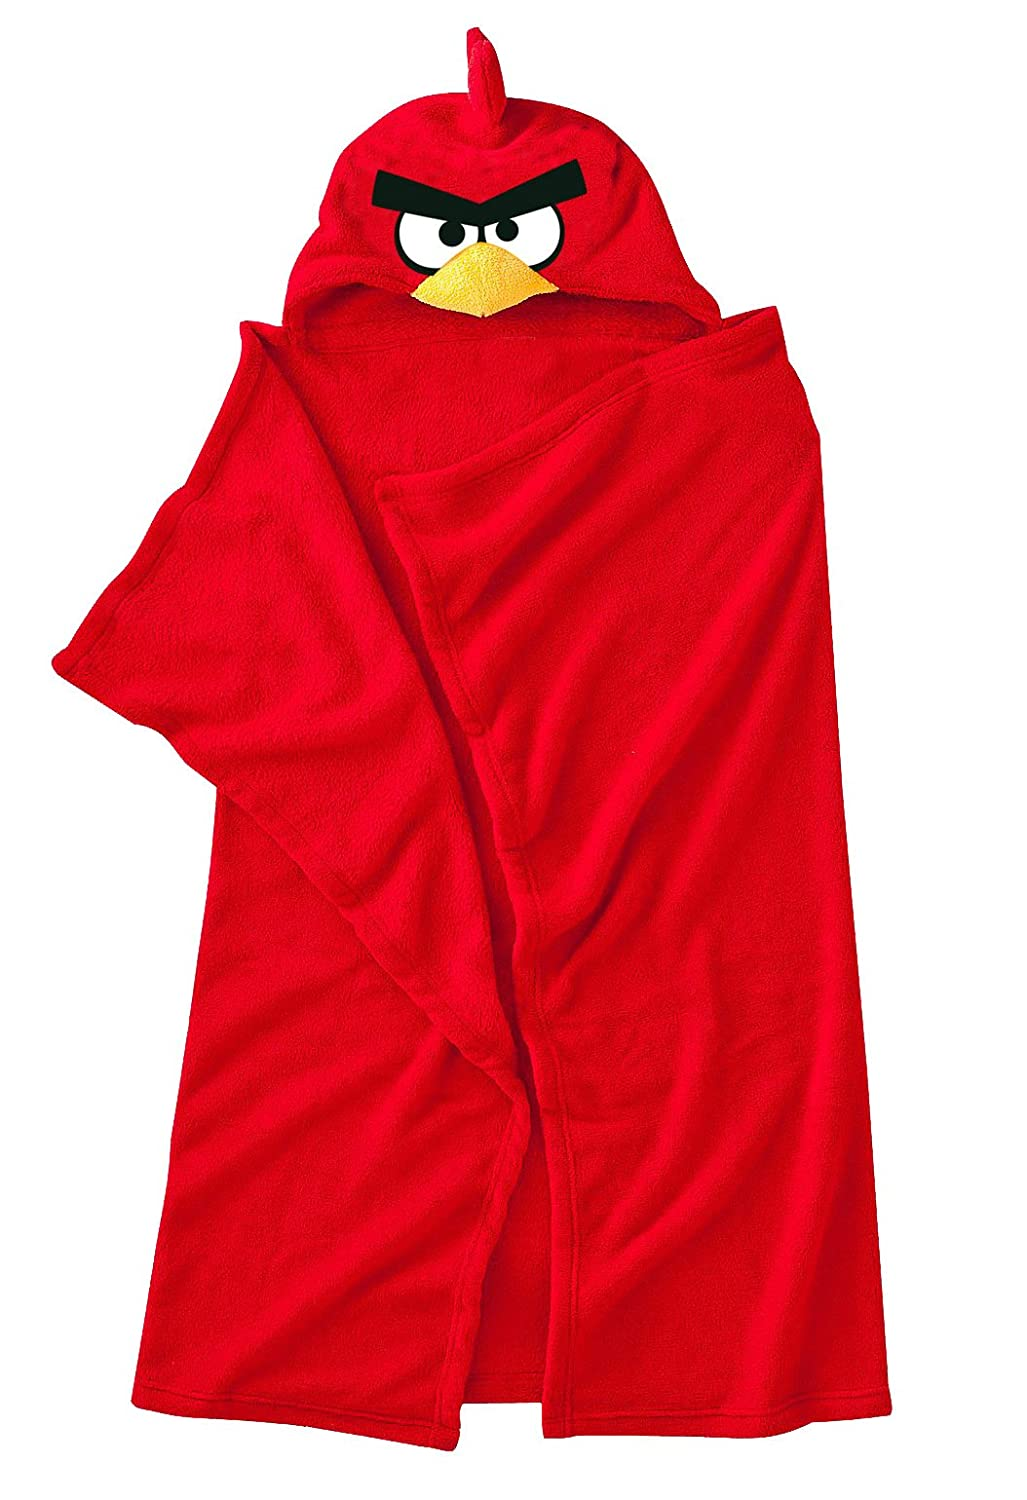 Angry Birds Hooded Fleece Blanket, Red Dreamtex Ltd HF2-ANG-RED-12